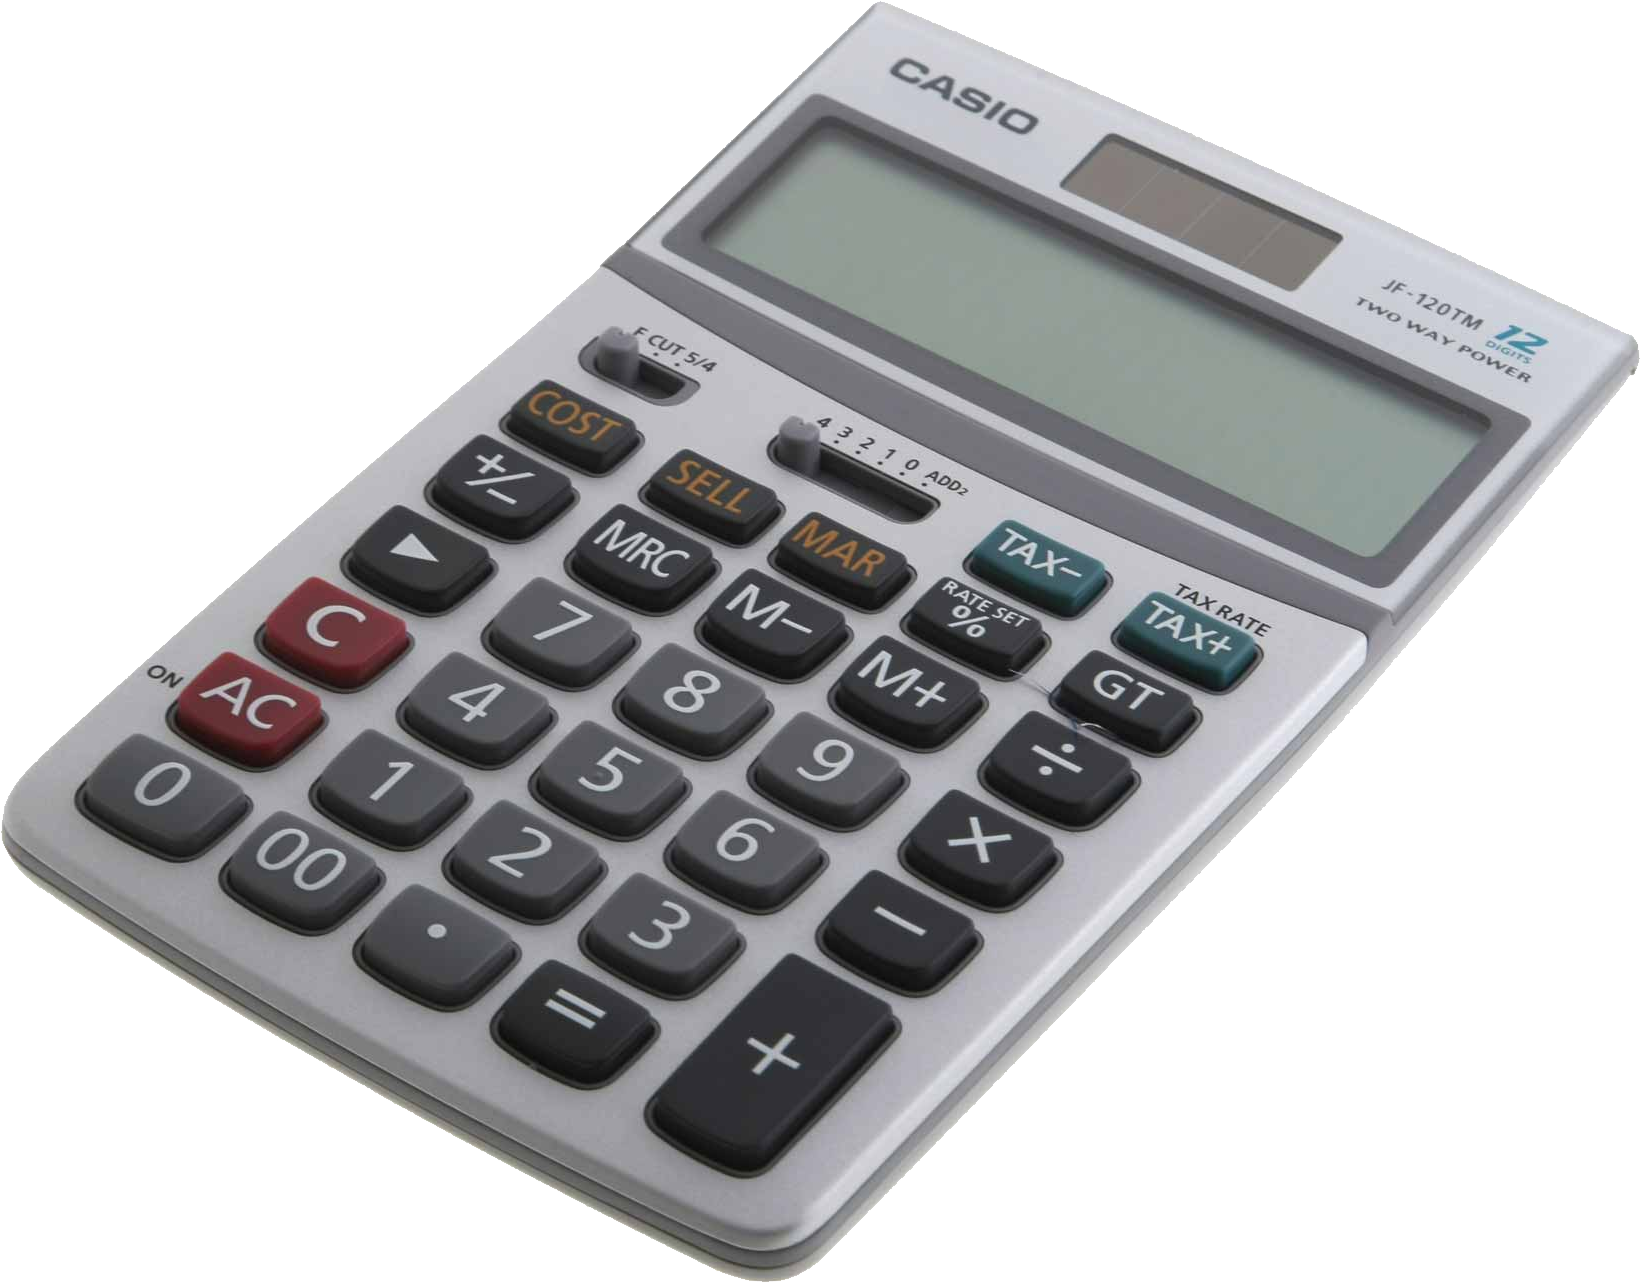 Money and calculator clipart png freeuse stock Math Calculator PNG Image - PurePNG | Free transparent CC0 PNG Image ... png freeuse stock